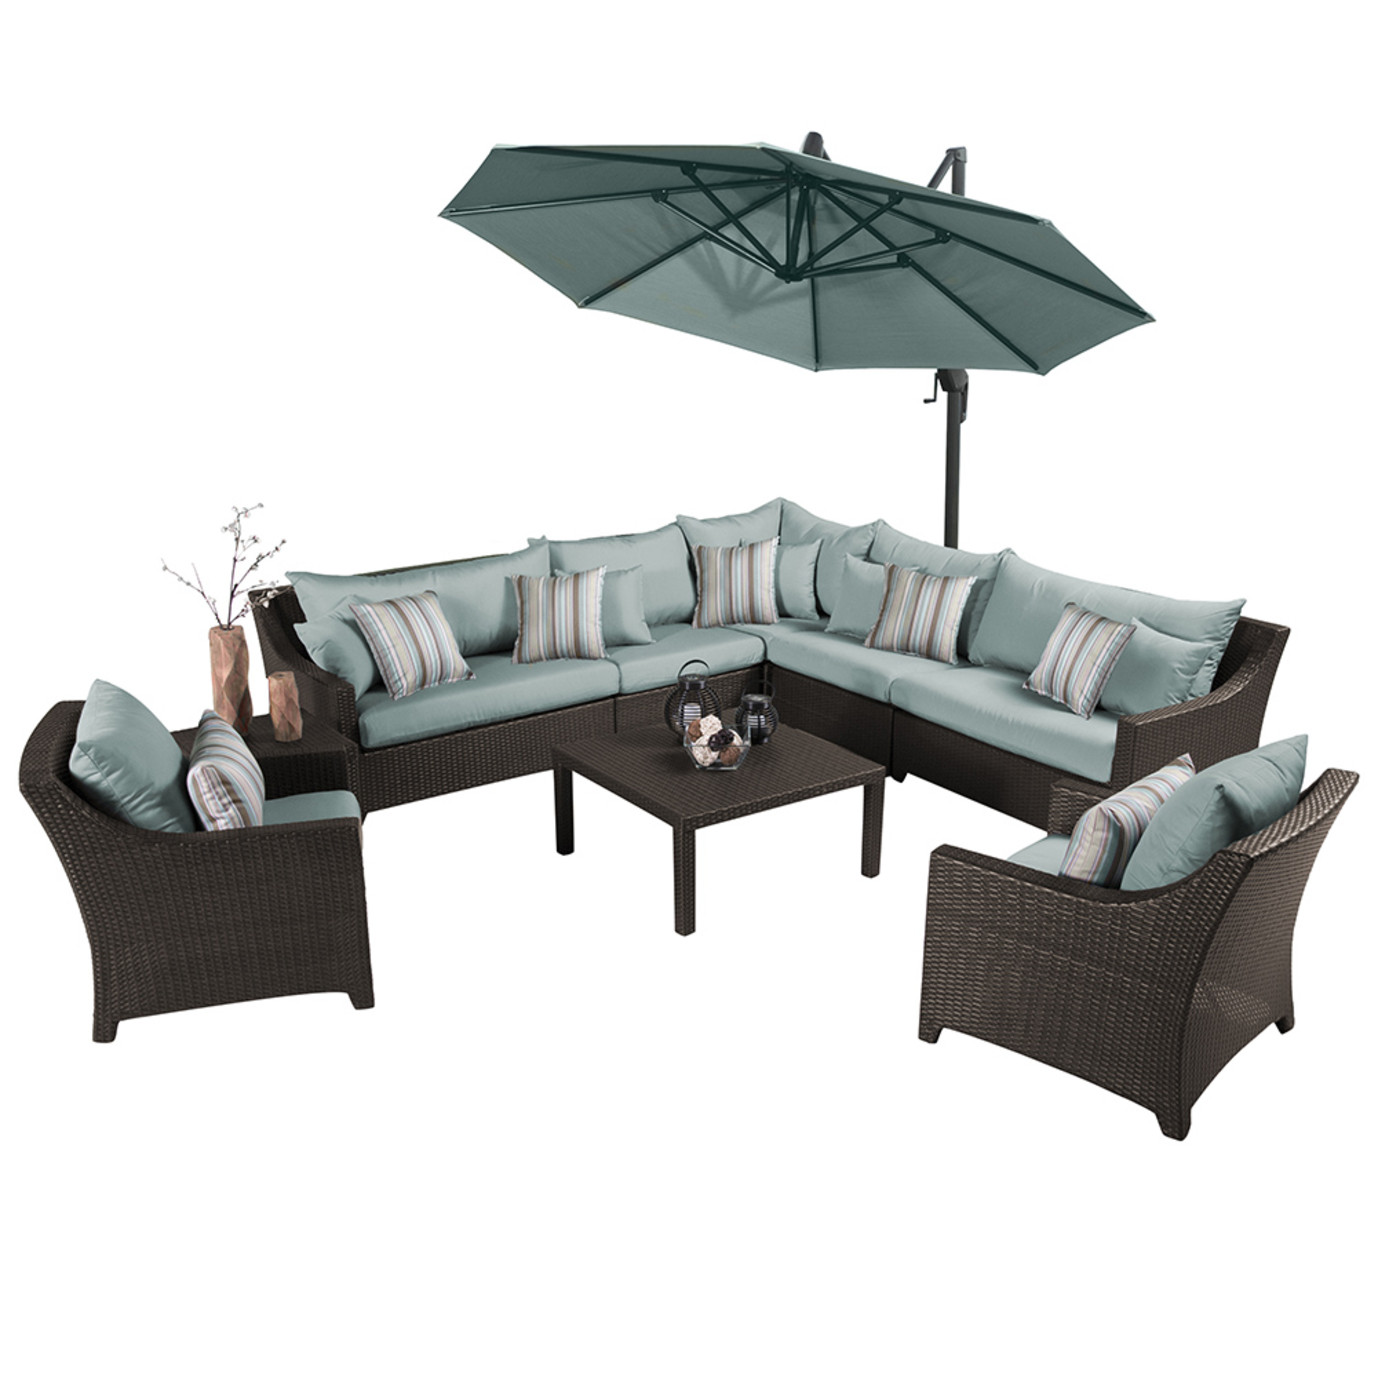 Deco™ 9 Piece Sectional and Club Set with Umbrella - Bliss Blue